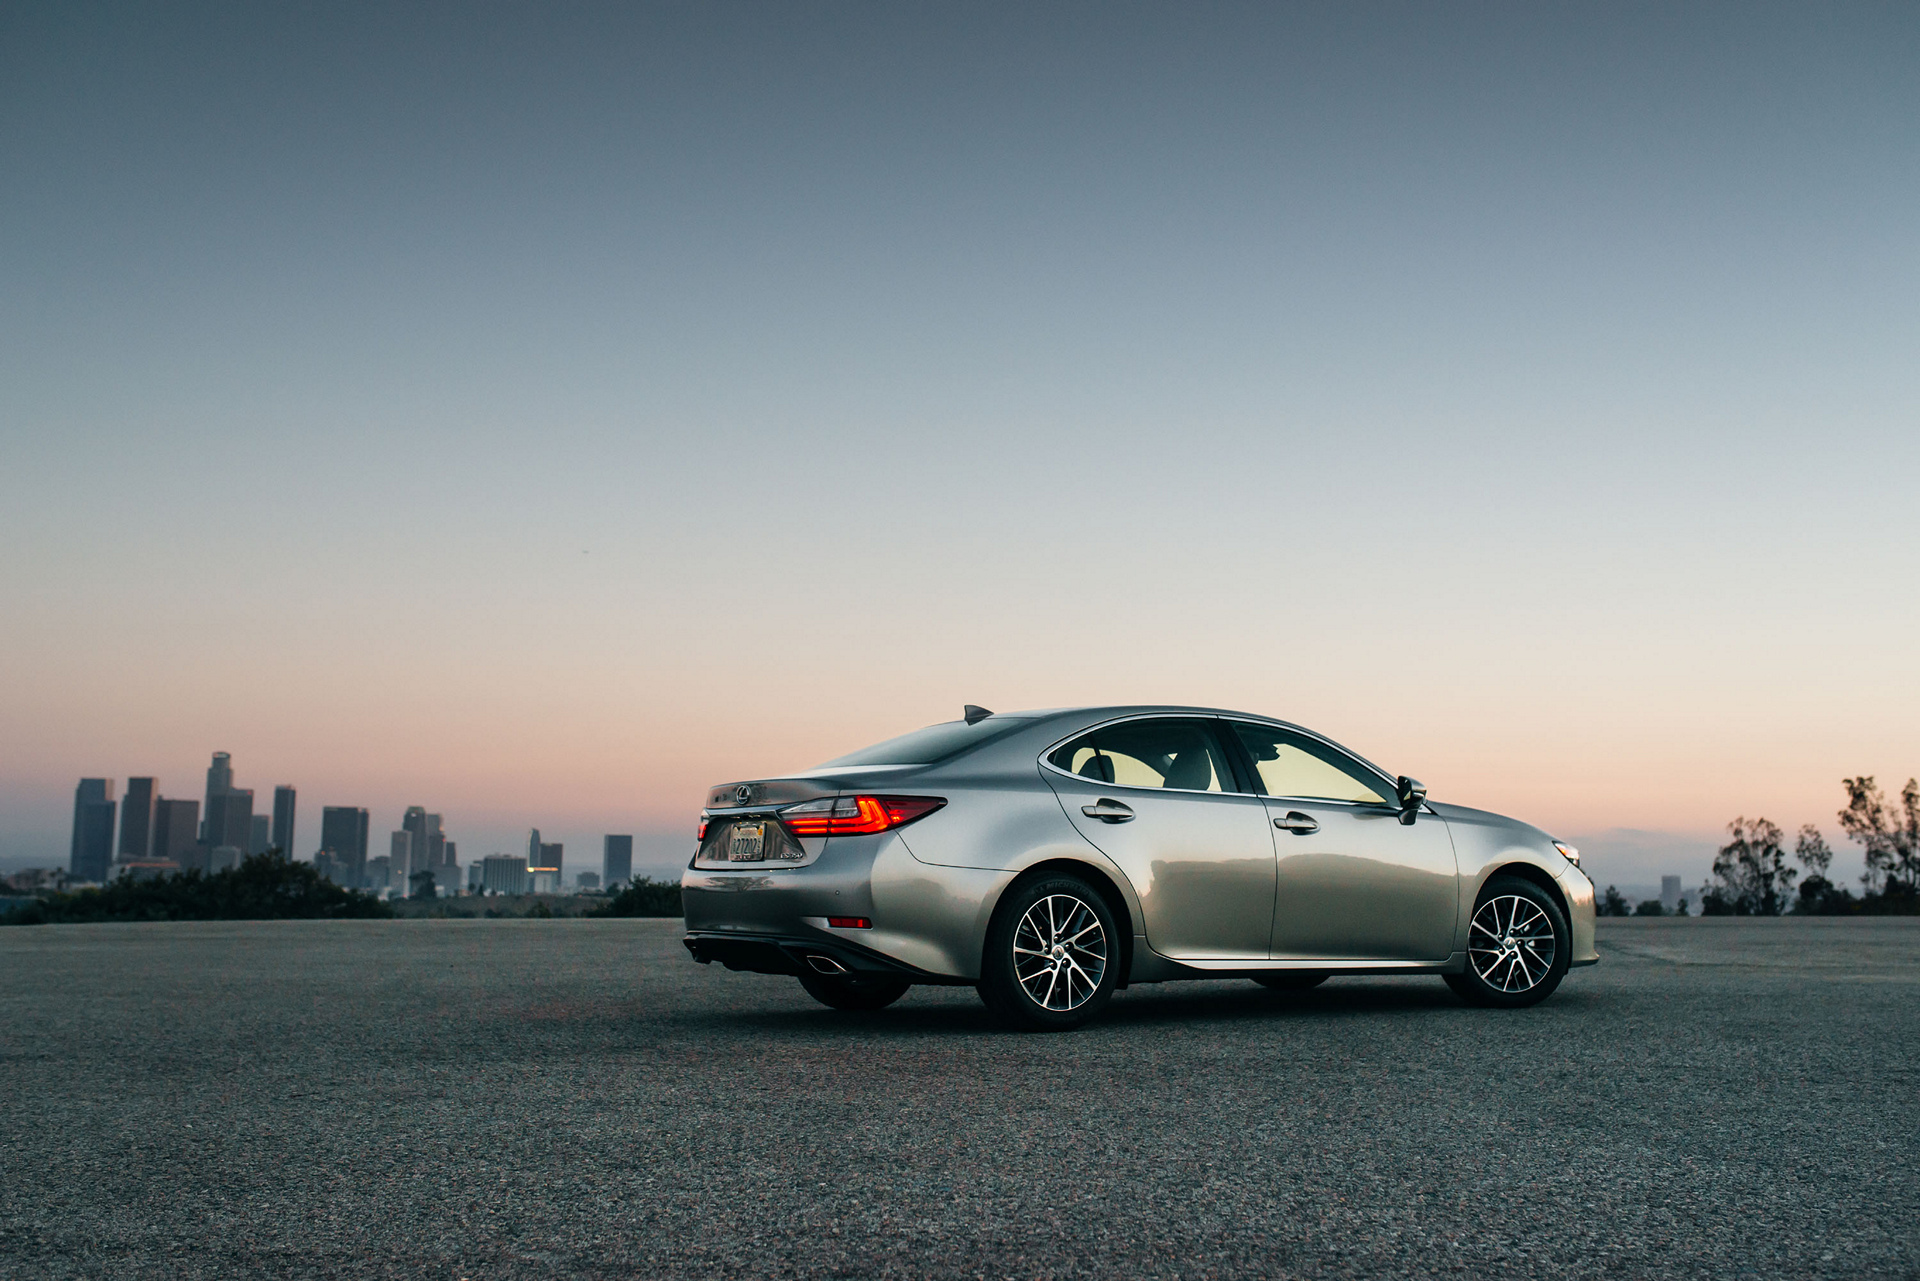 2016 Lexus ES 350 © Toyota Motor Corporation